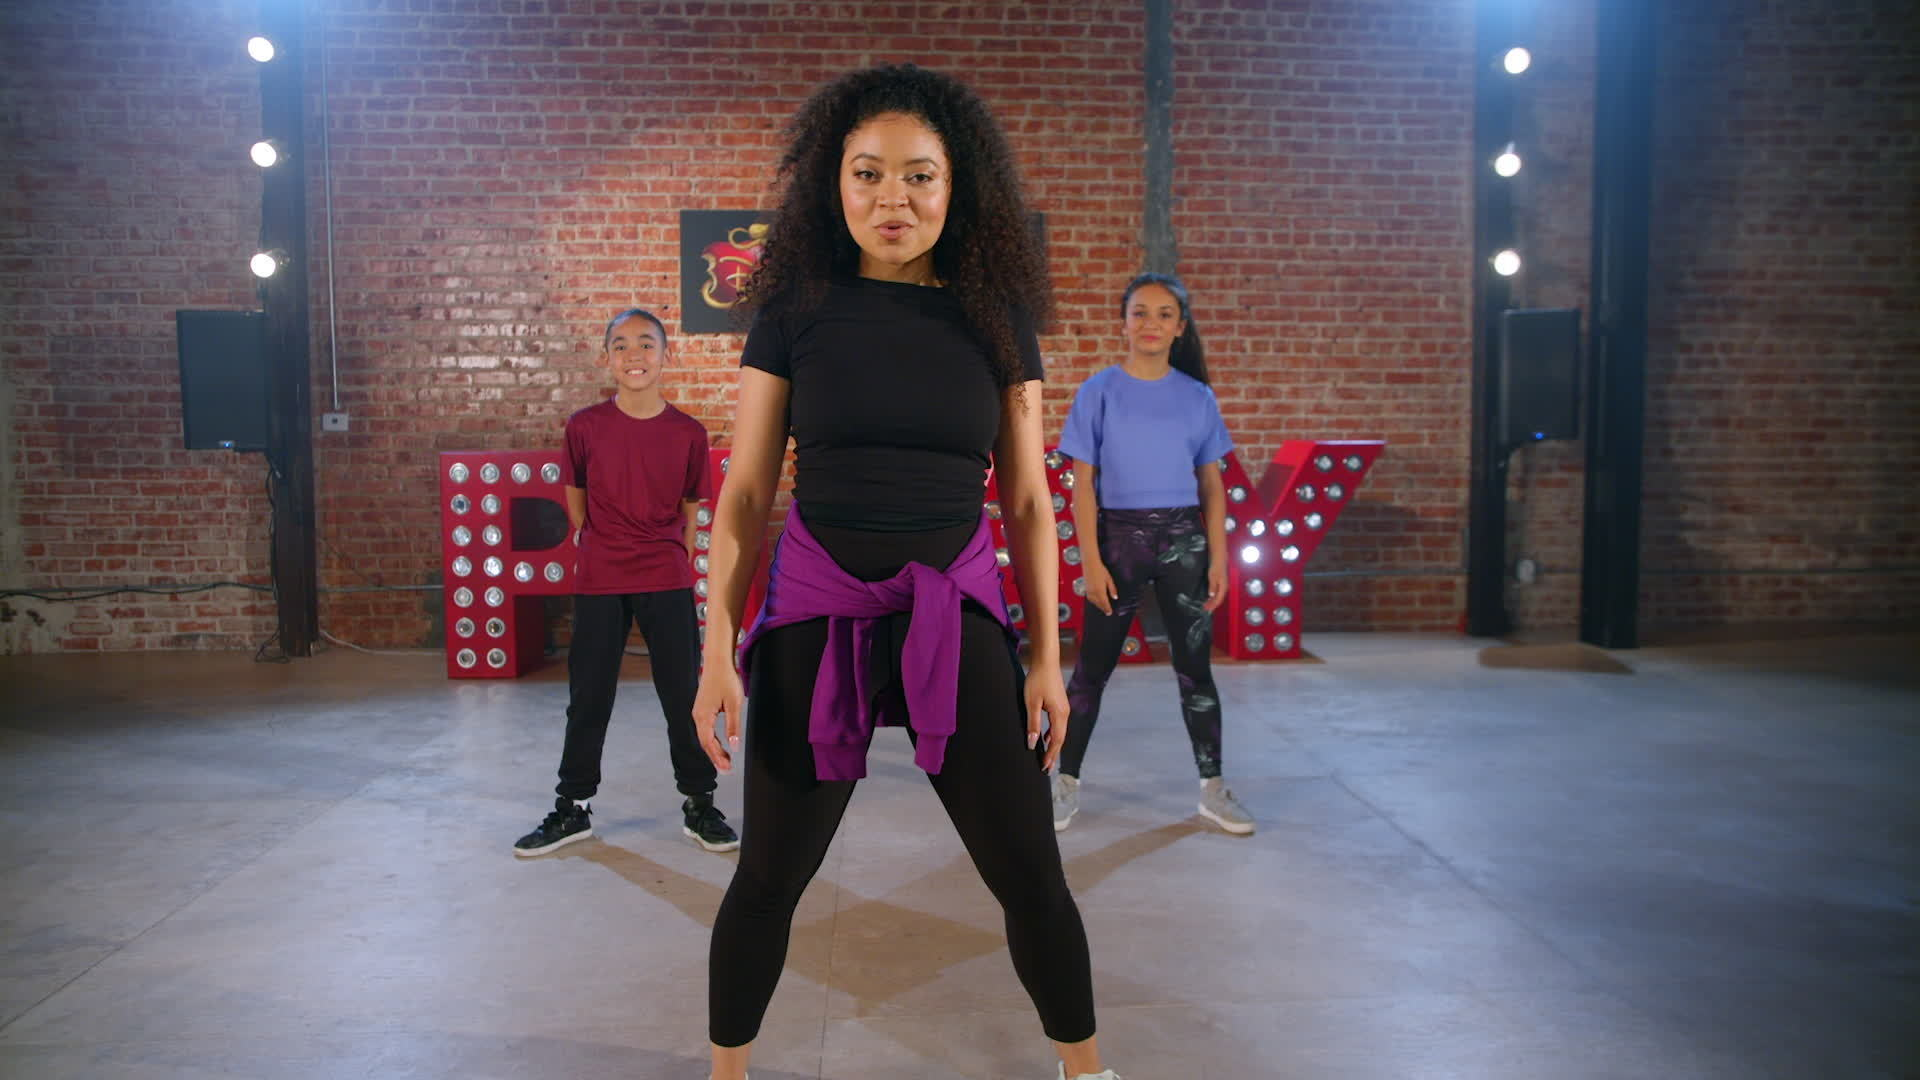 Dance Tutorial: Good To Be Bad